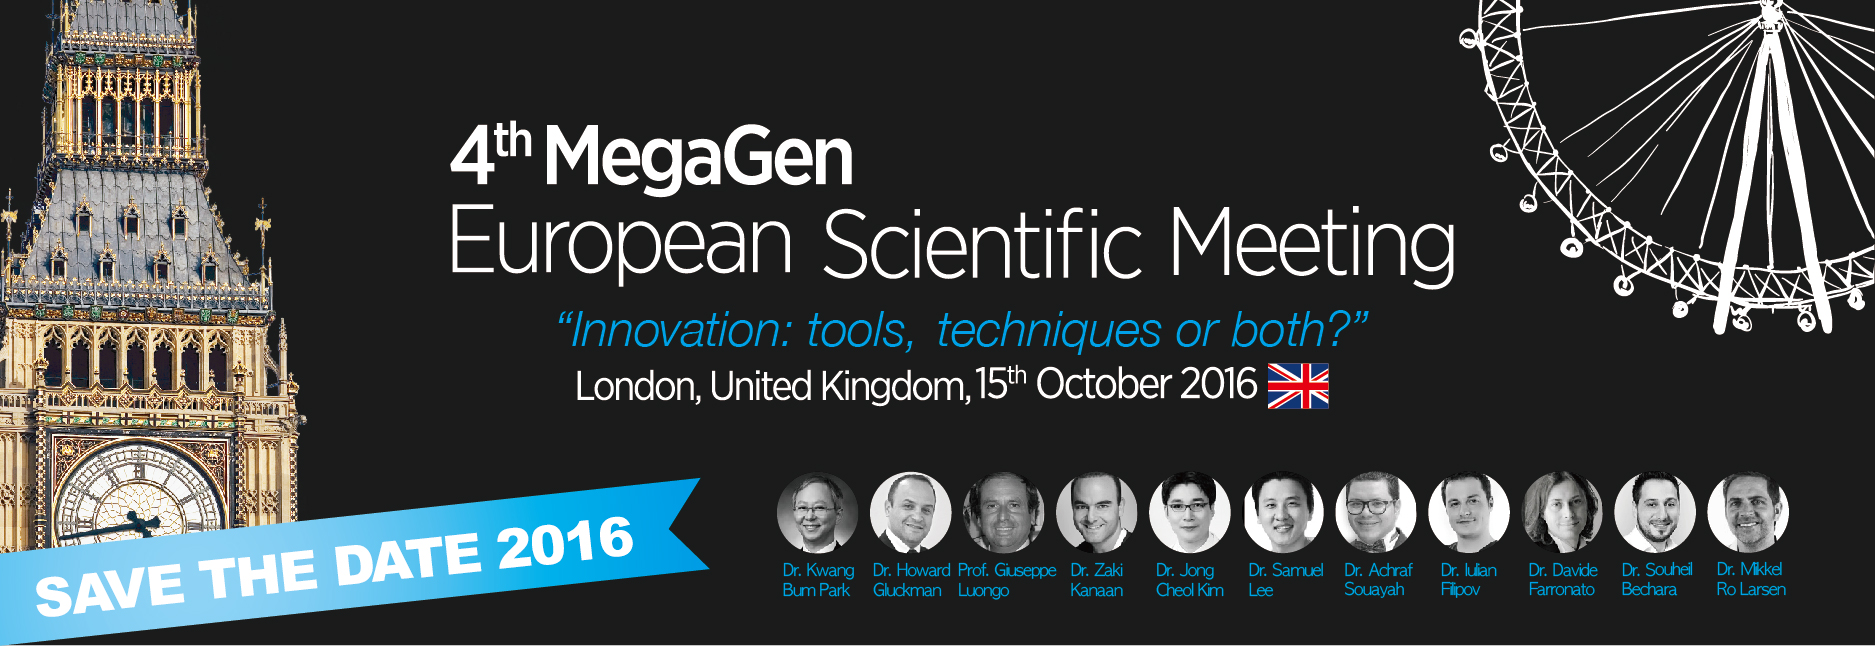 4th MegaGen European Scintific Meeting